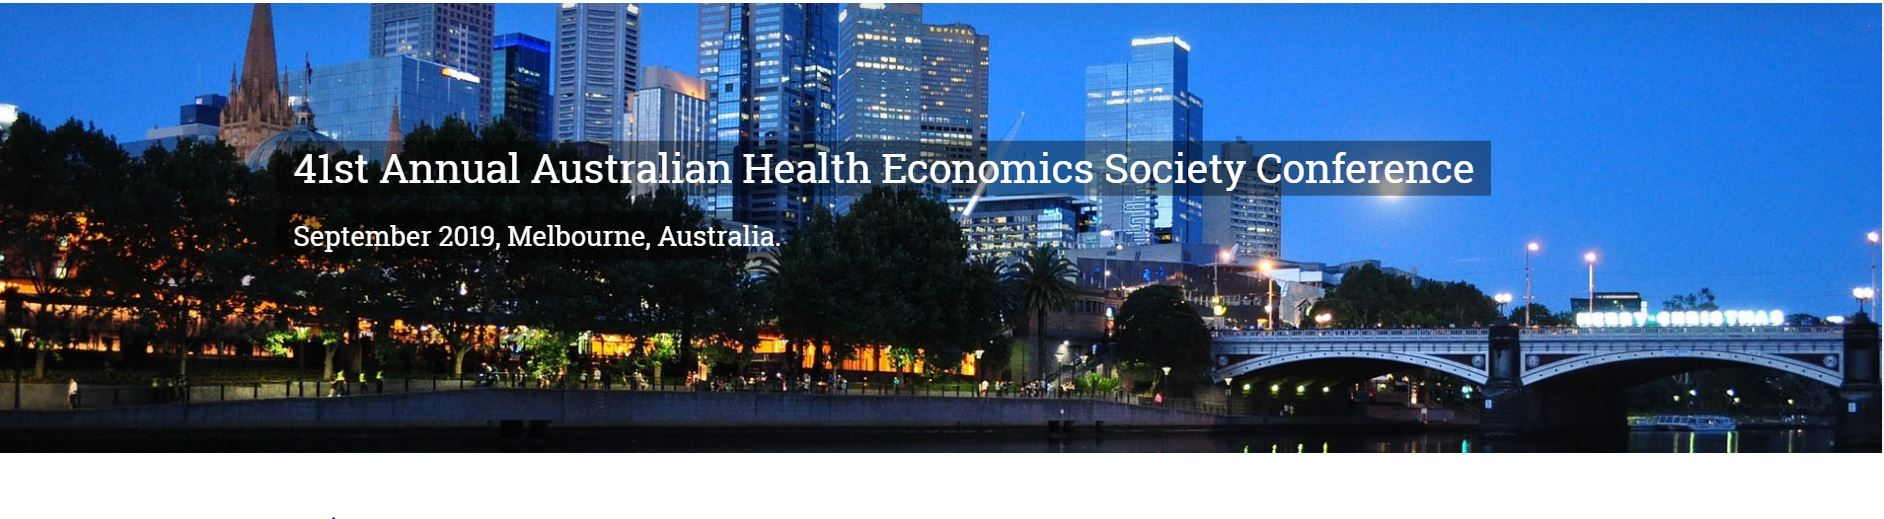 Australian Health Economics Society Conference 2019